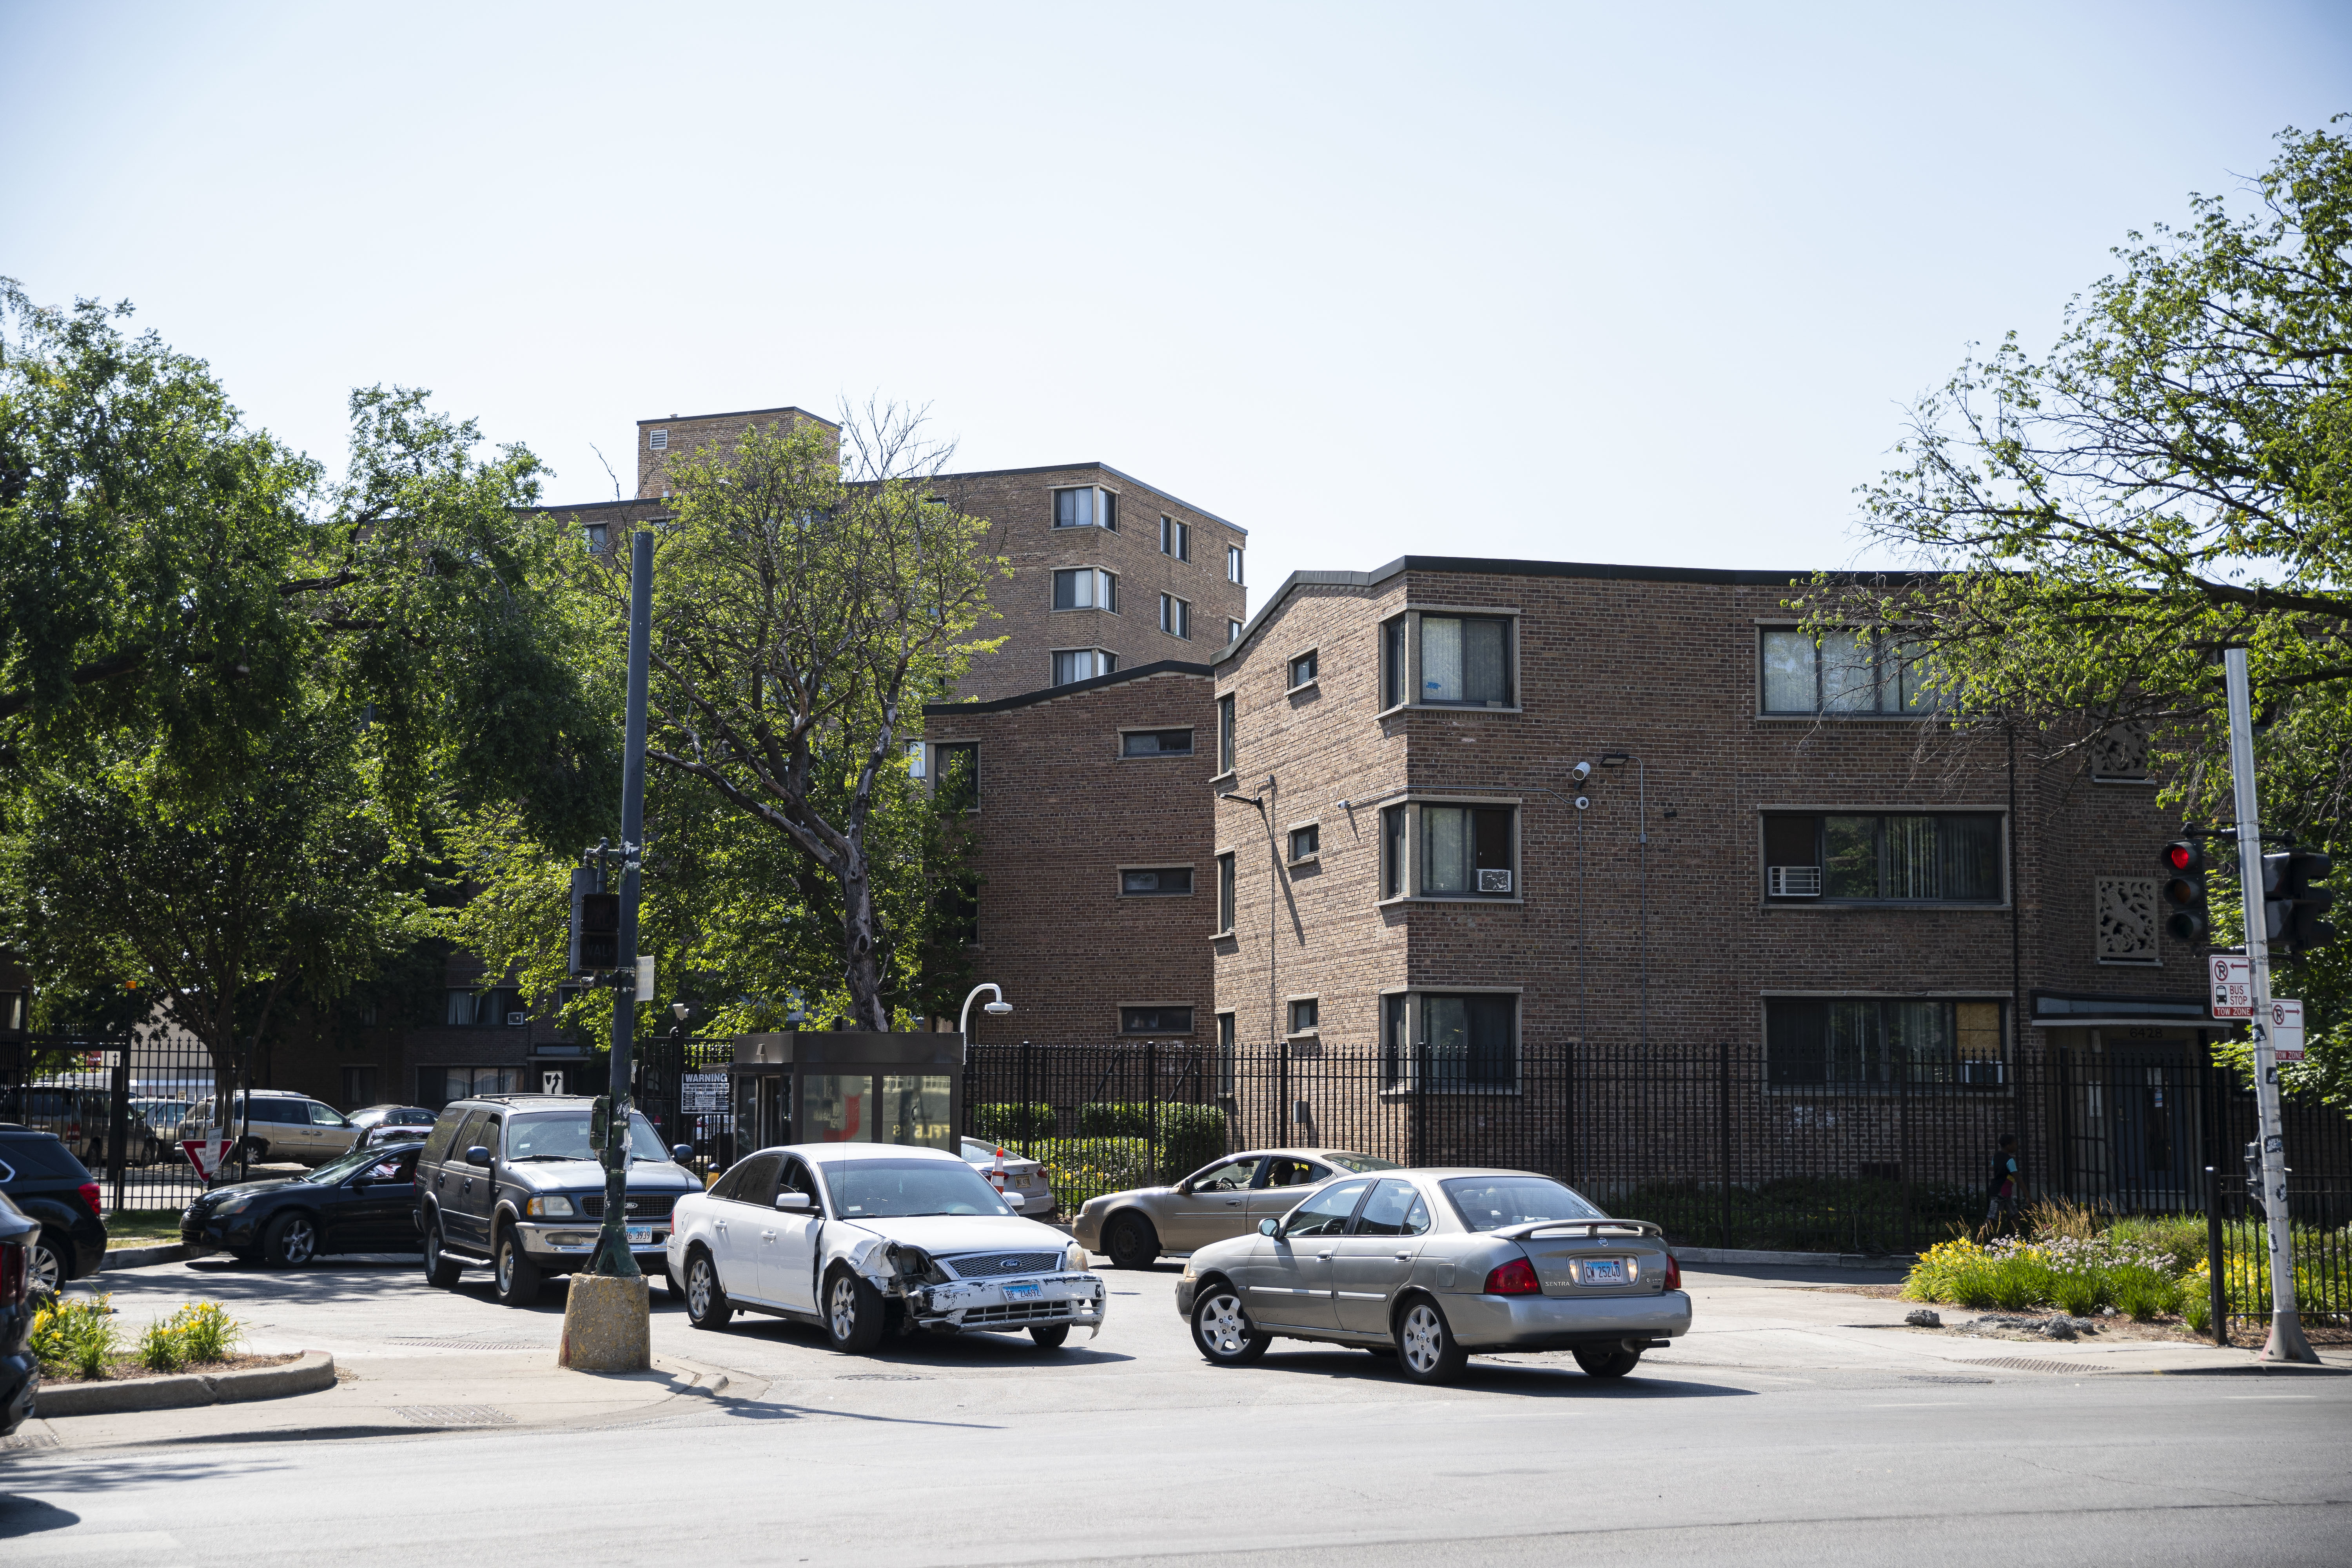 A portion of the Parkway Gardens development at 64th Street and Dr. Martin Luther King Jr. Drive.